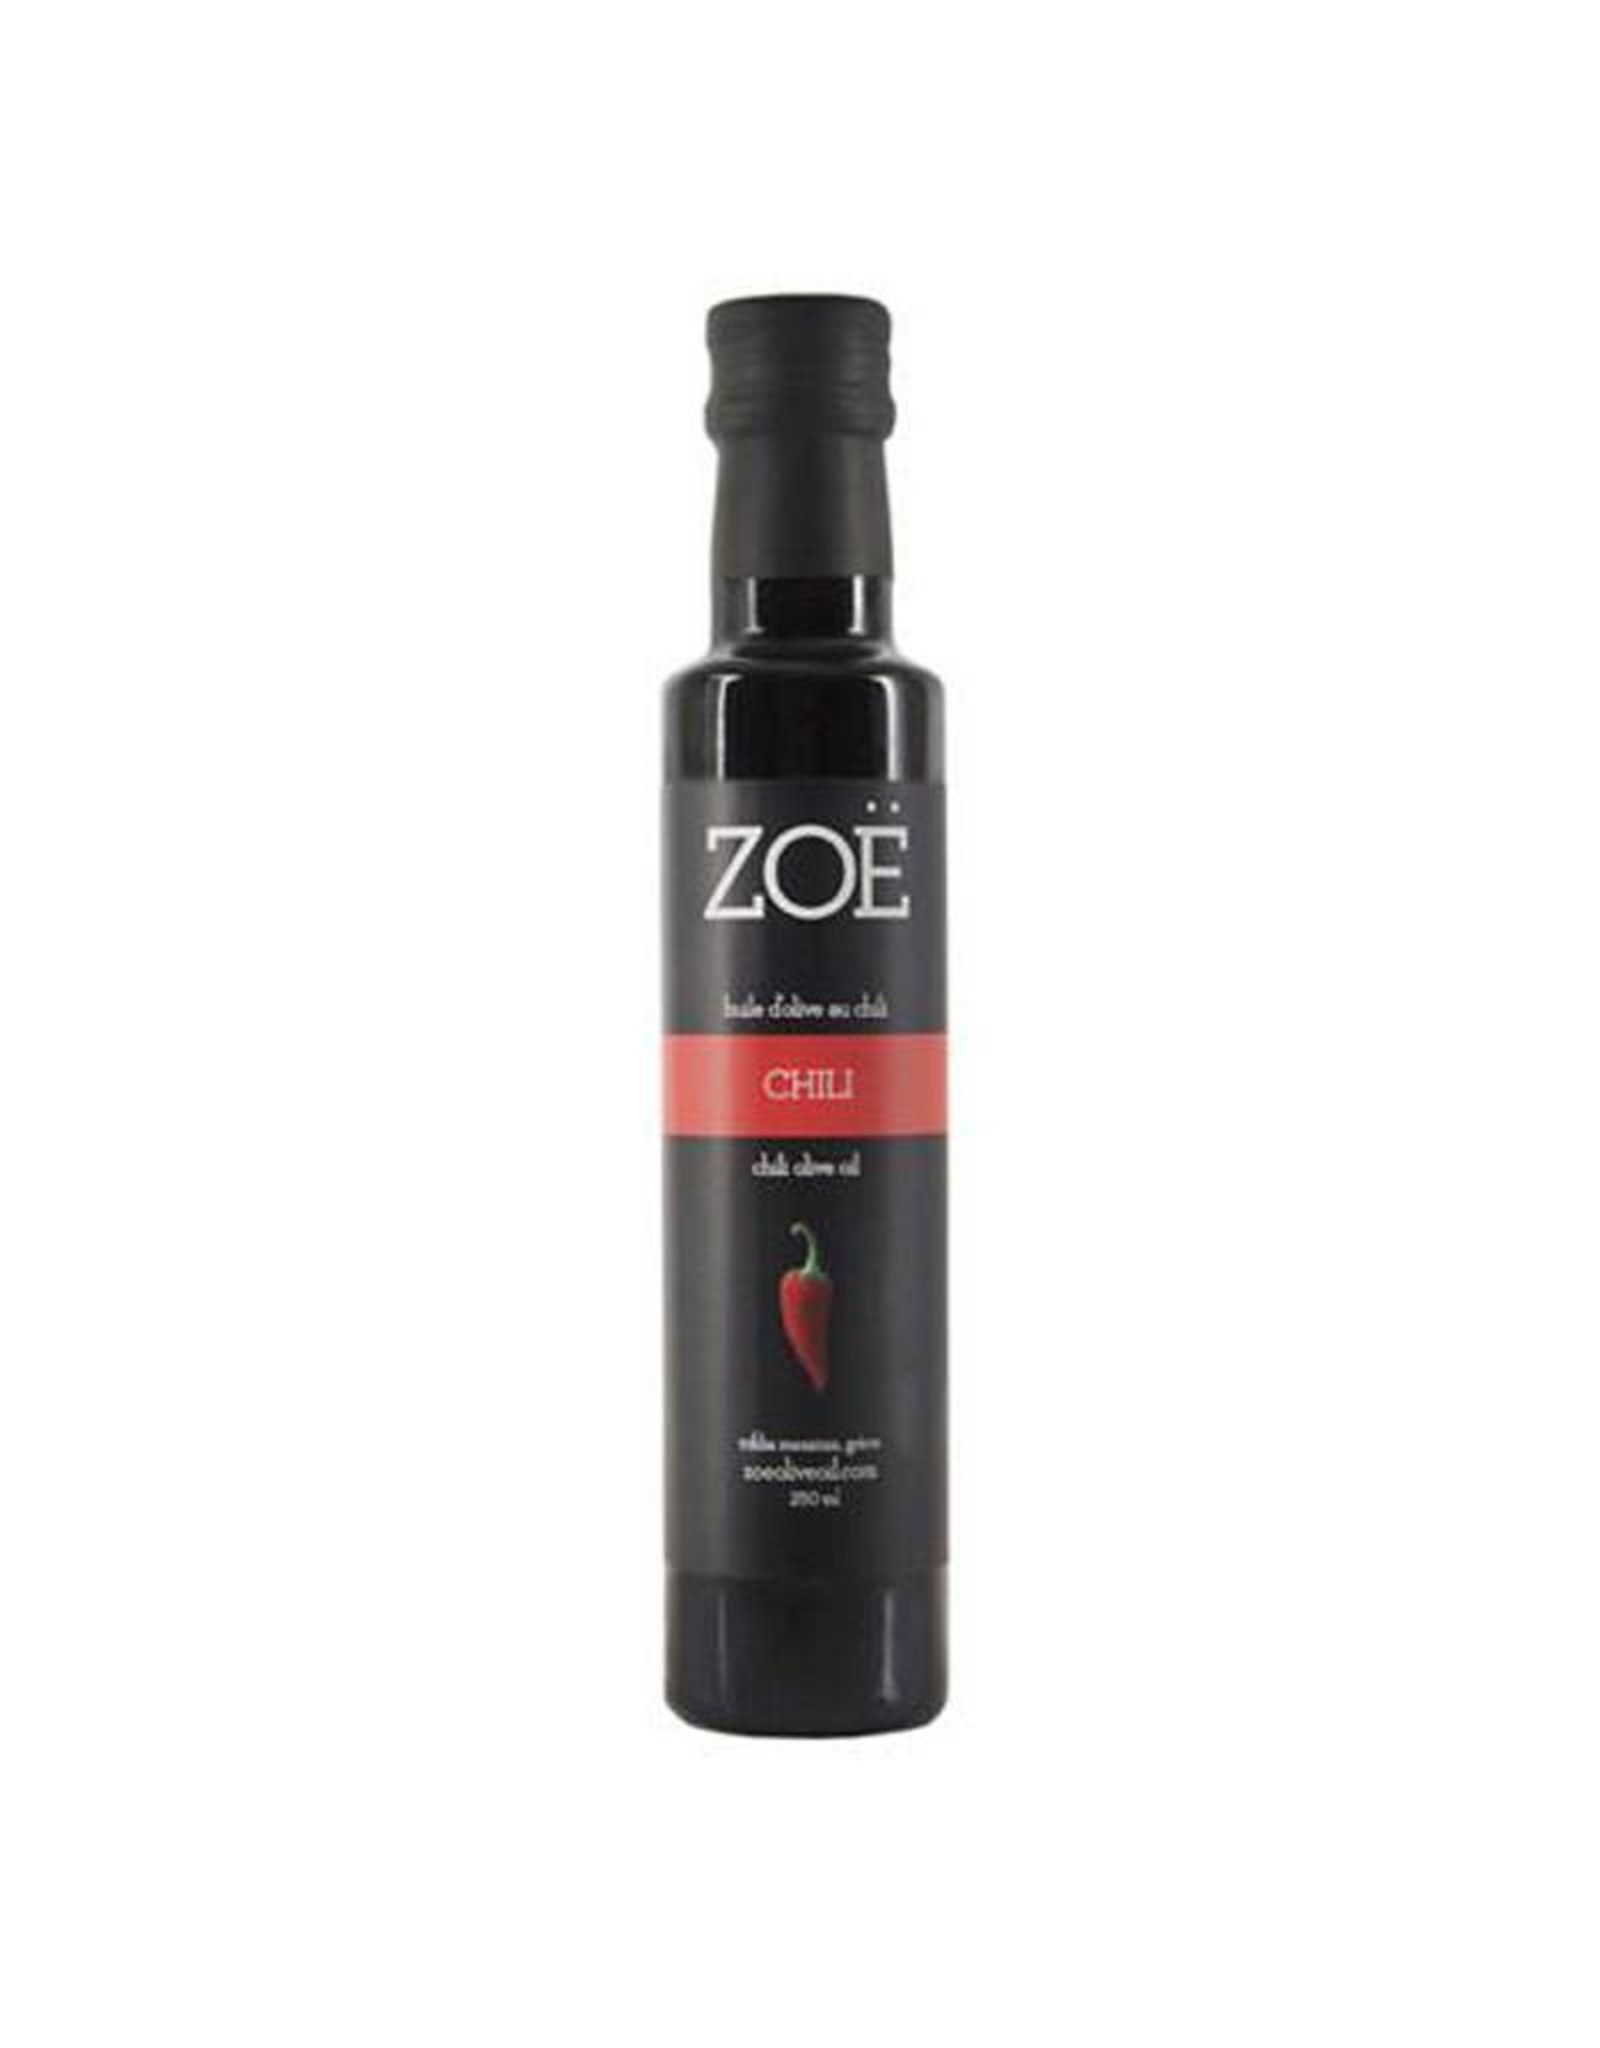 Zoe Infused Extra Virgin Olive Oil 250ml Chili